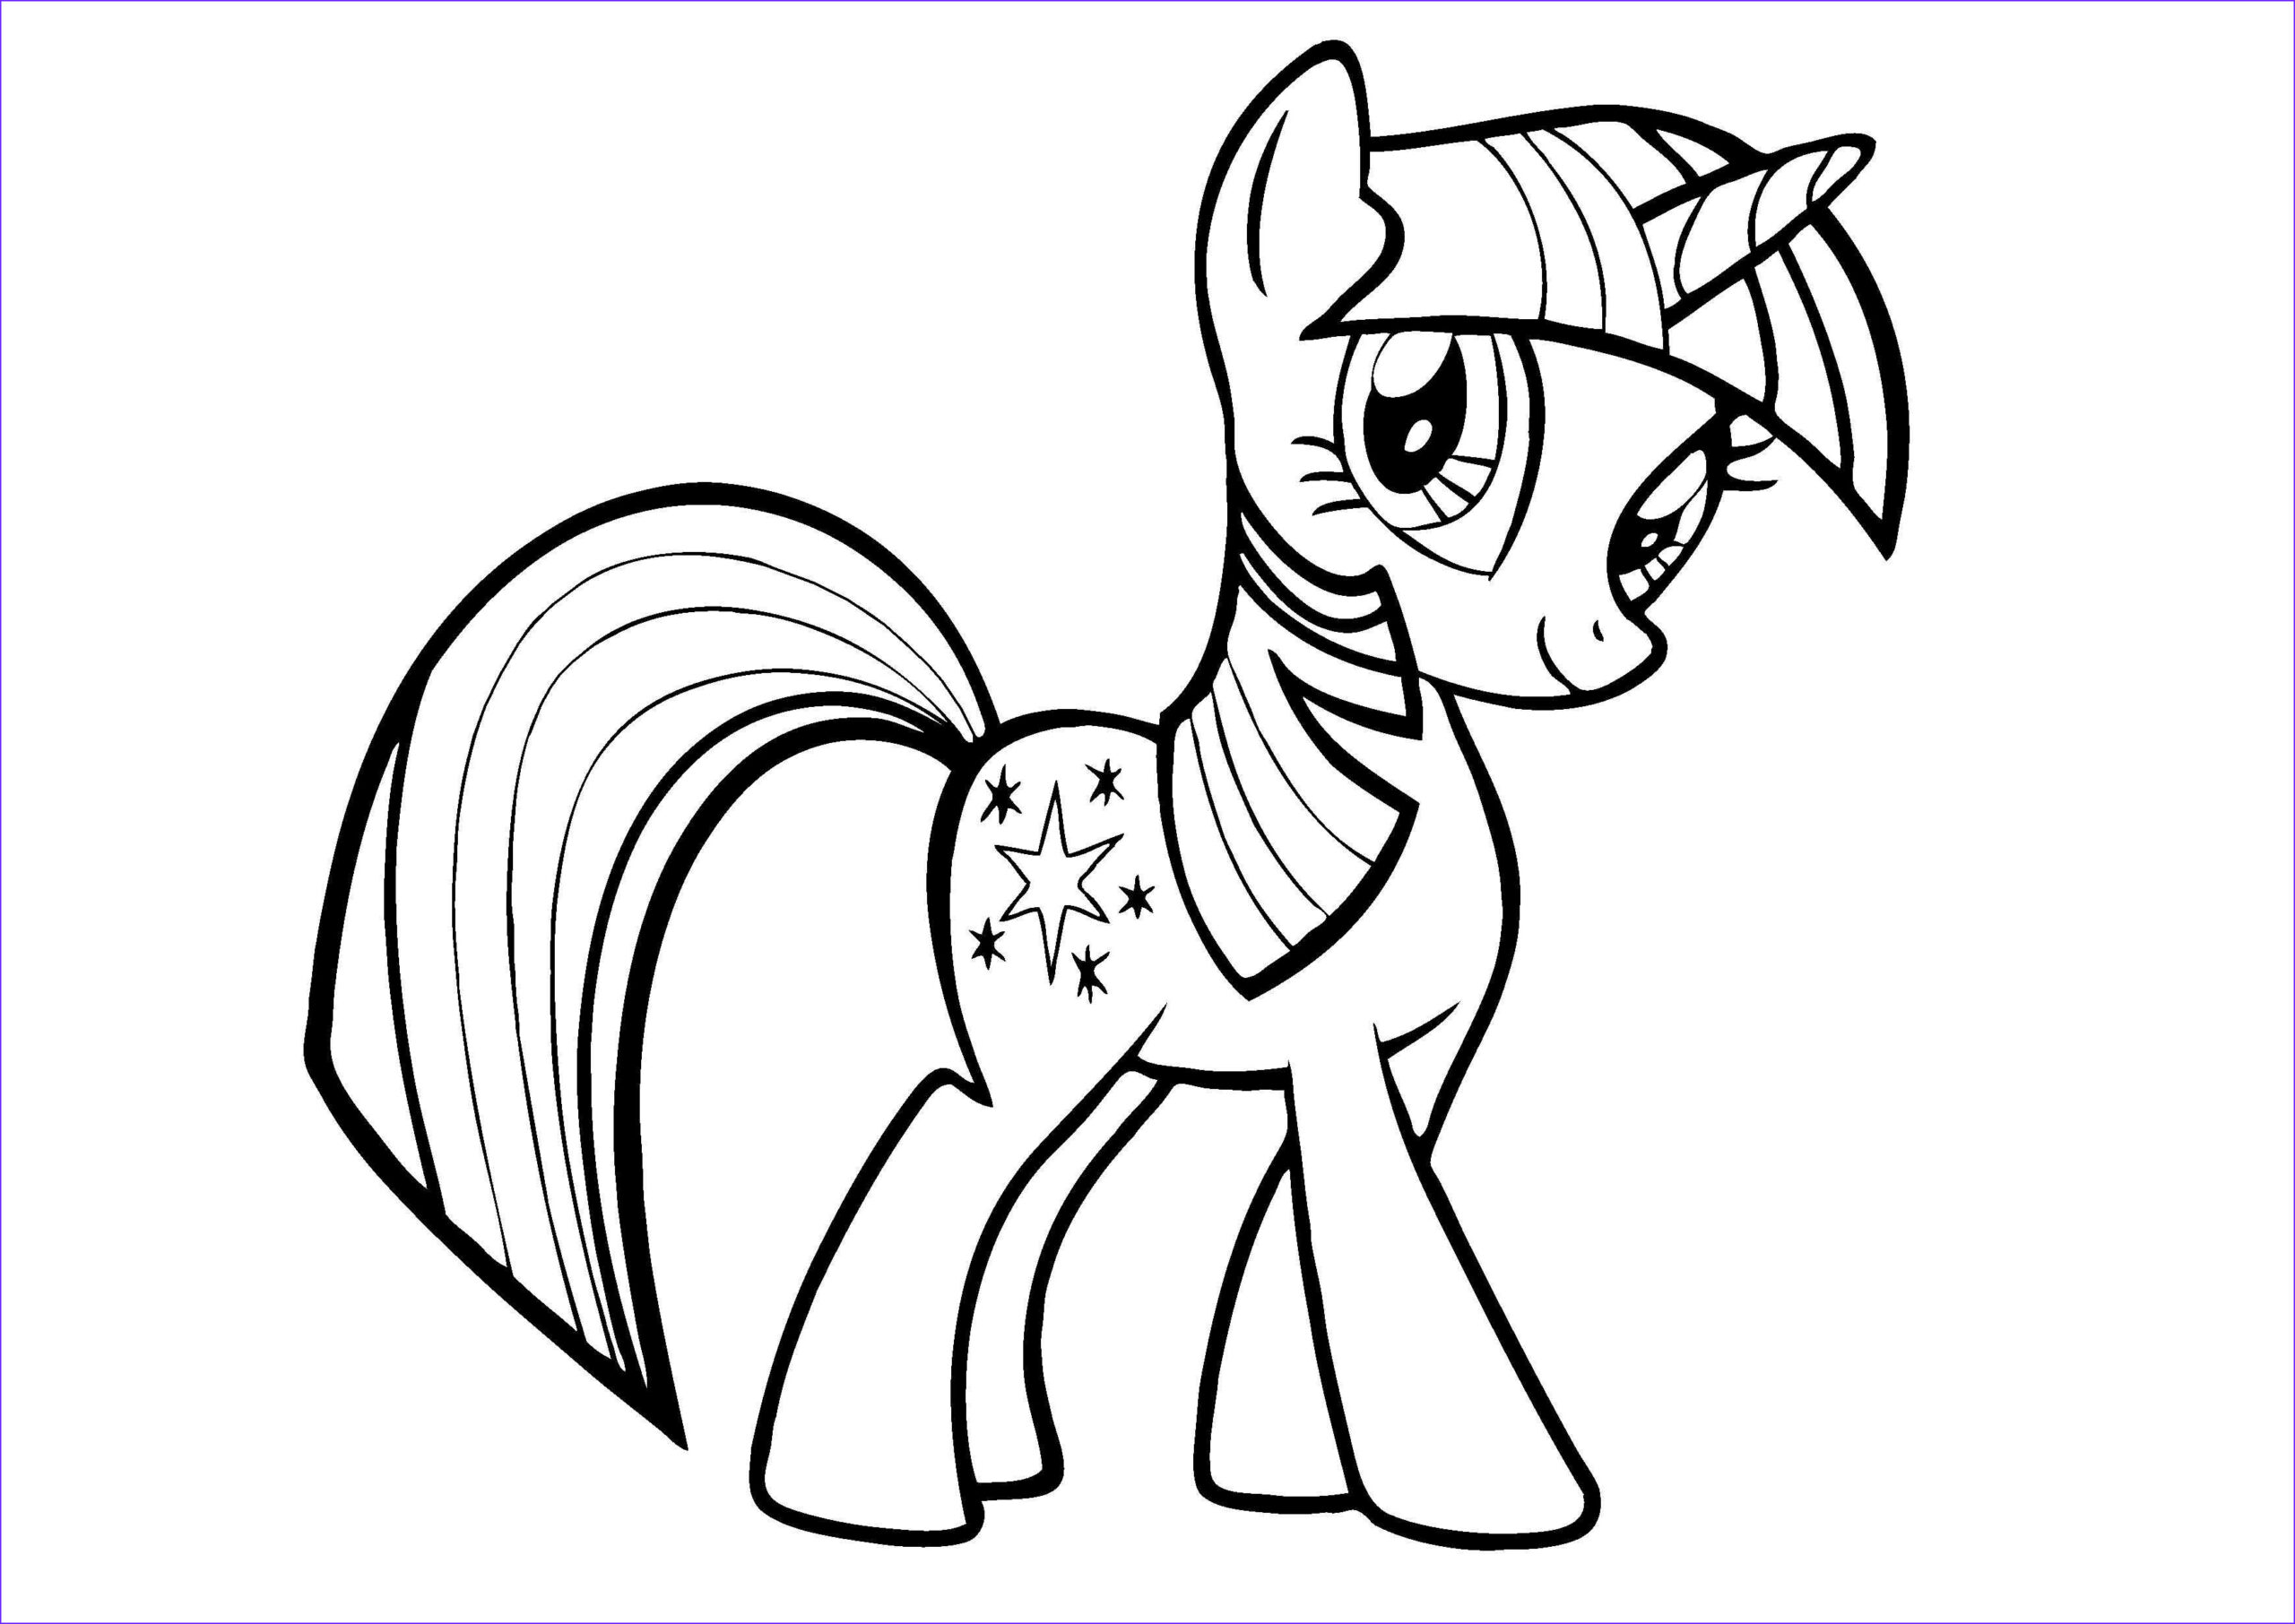 My Little Pony Coloring Pages to Print Cool Photos Free Printable My Little Pony Coloring Pages for Kids